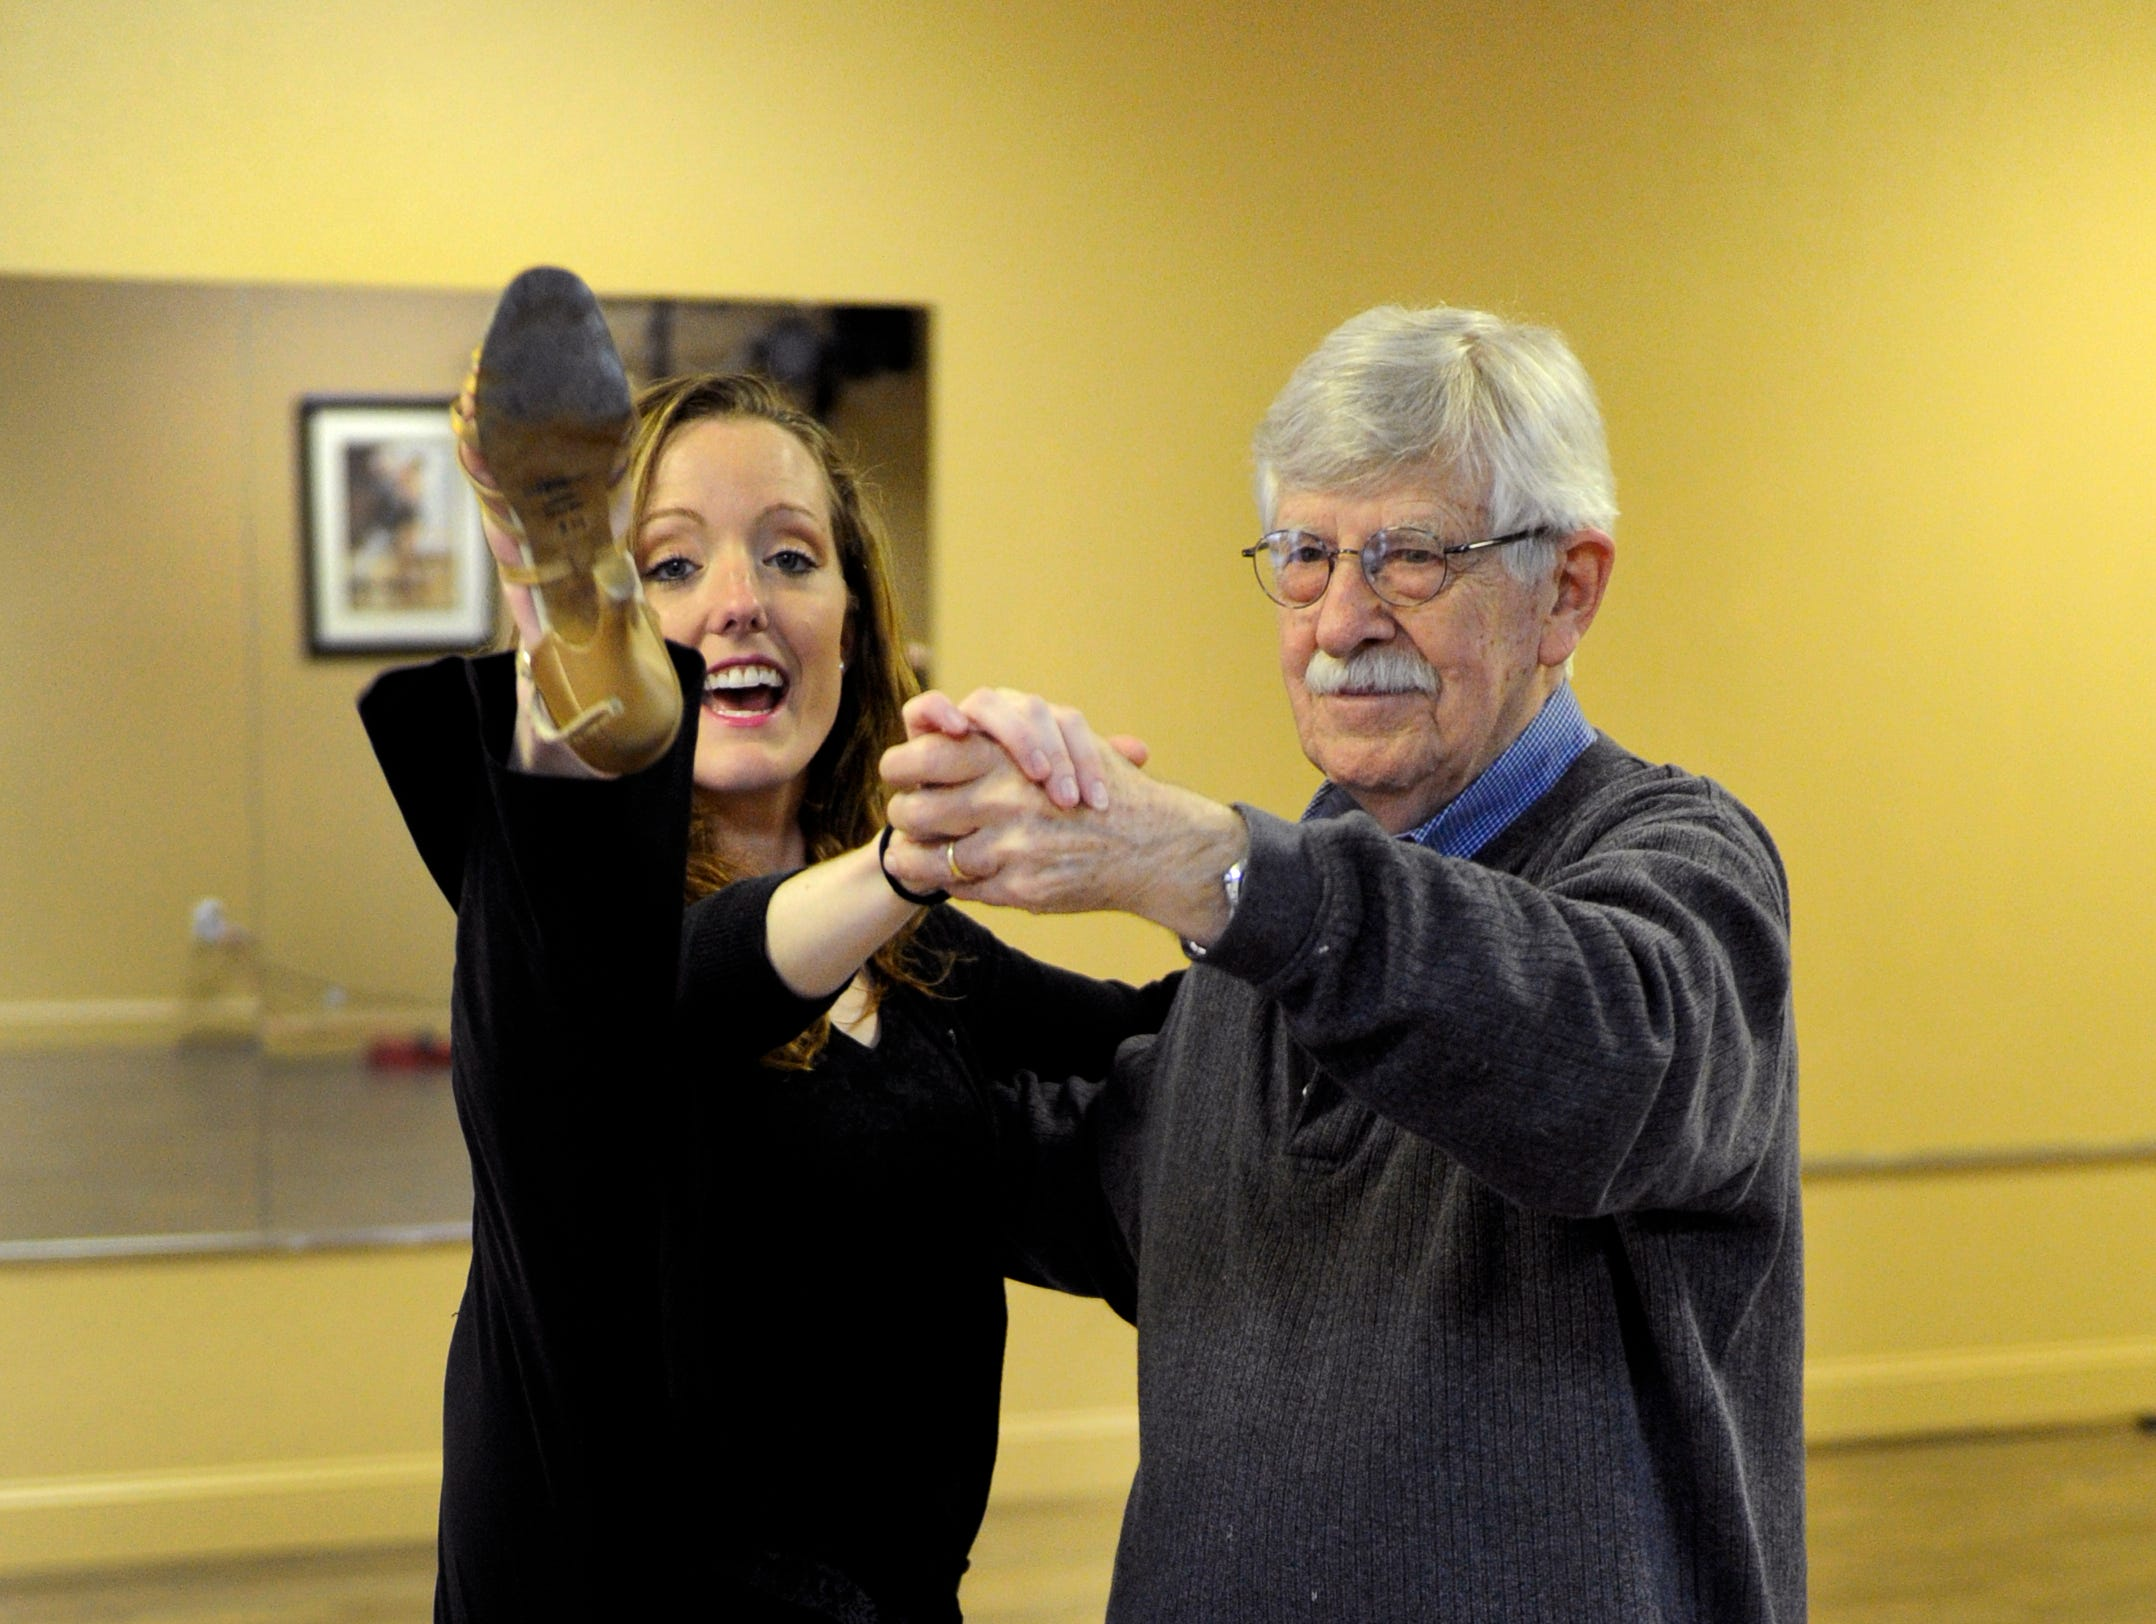 Charlie Daniel and his dance partner Stephanie Braeuner practicing Tuesday, Mar. 12, 2013 at Academy Ballroom. Charlie Daniel is representing the News Sentinel in the annual Children's Hospital fundraiser dancing w/ the knoxville stars.